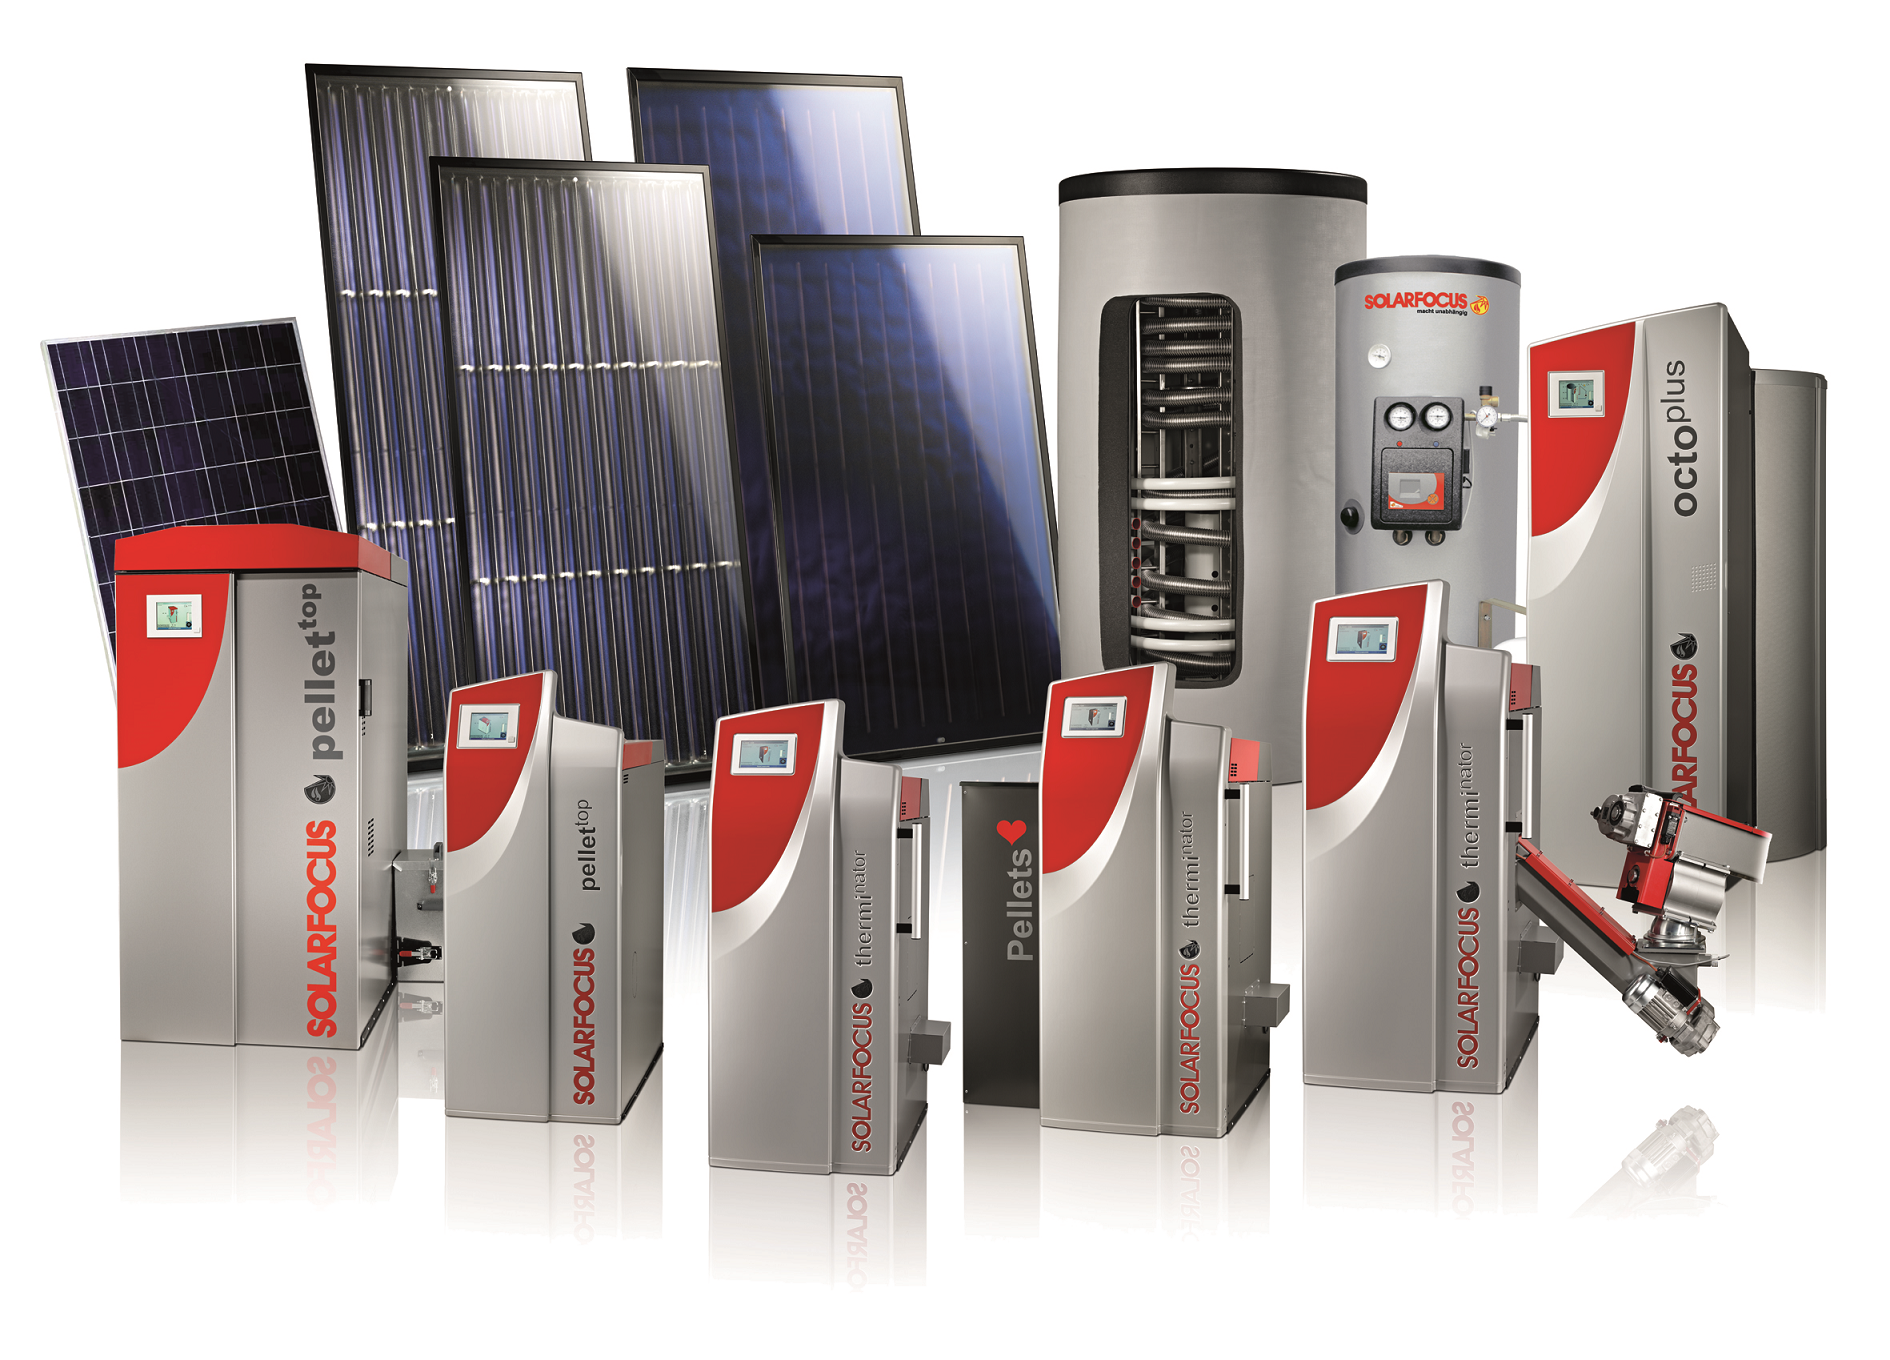 Products Solarfocus